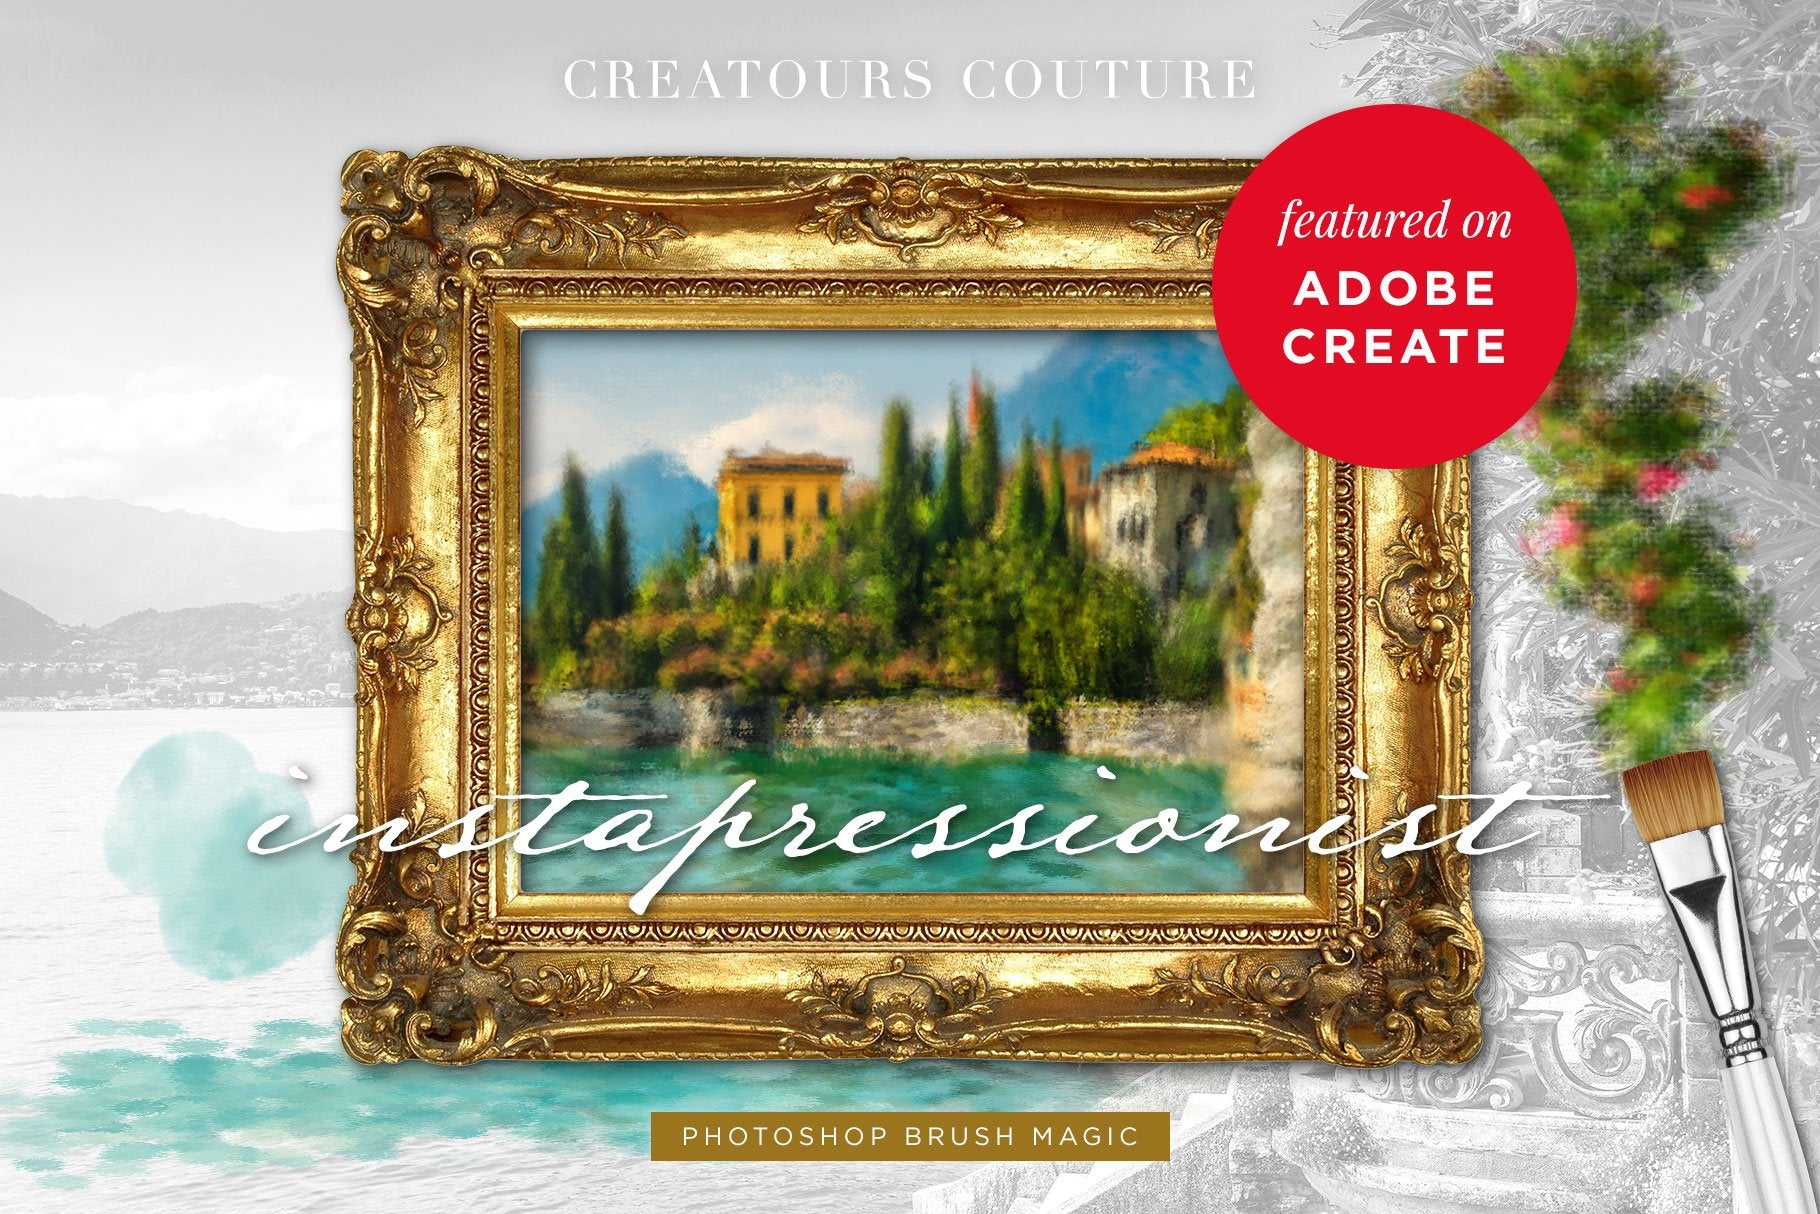 Create Impressionist Art from Any Photograph plus FREE Photoshop Brushes Featured on Adobe Create